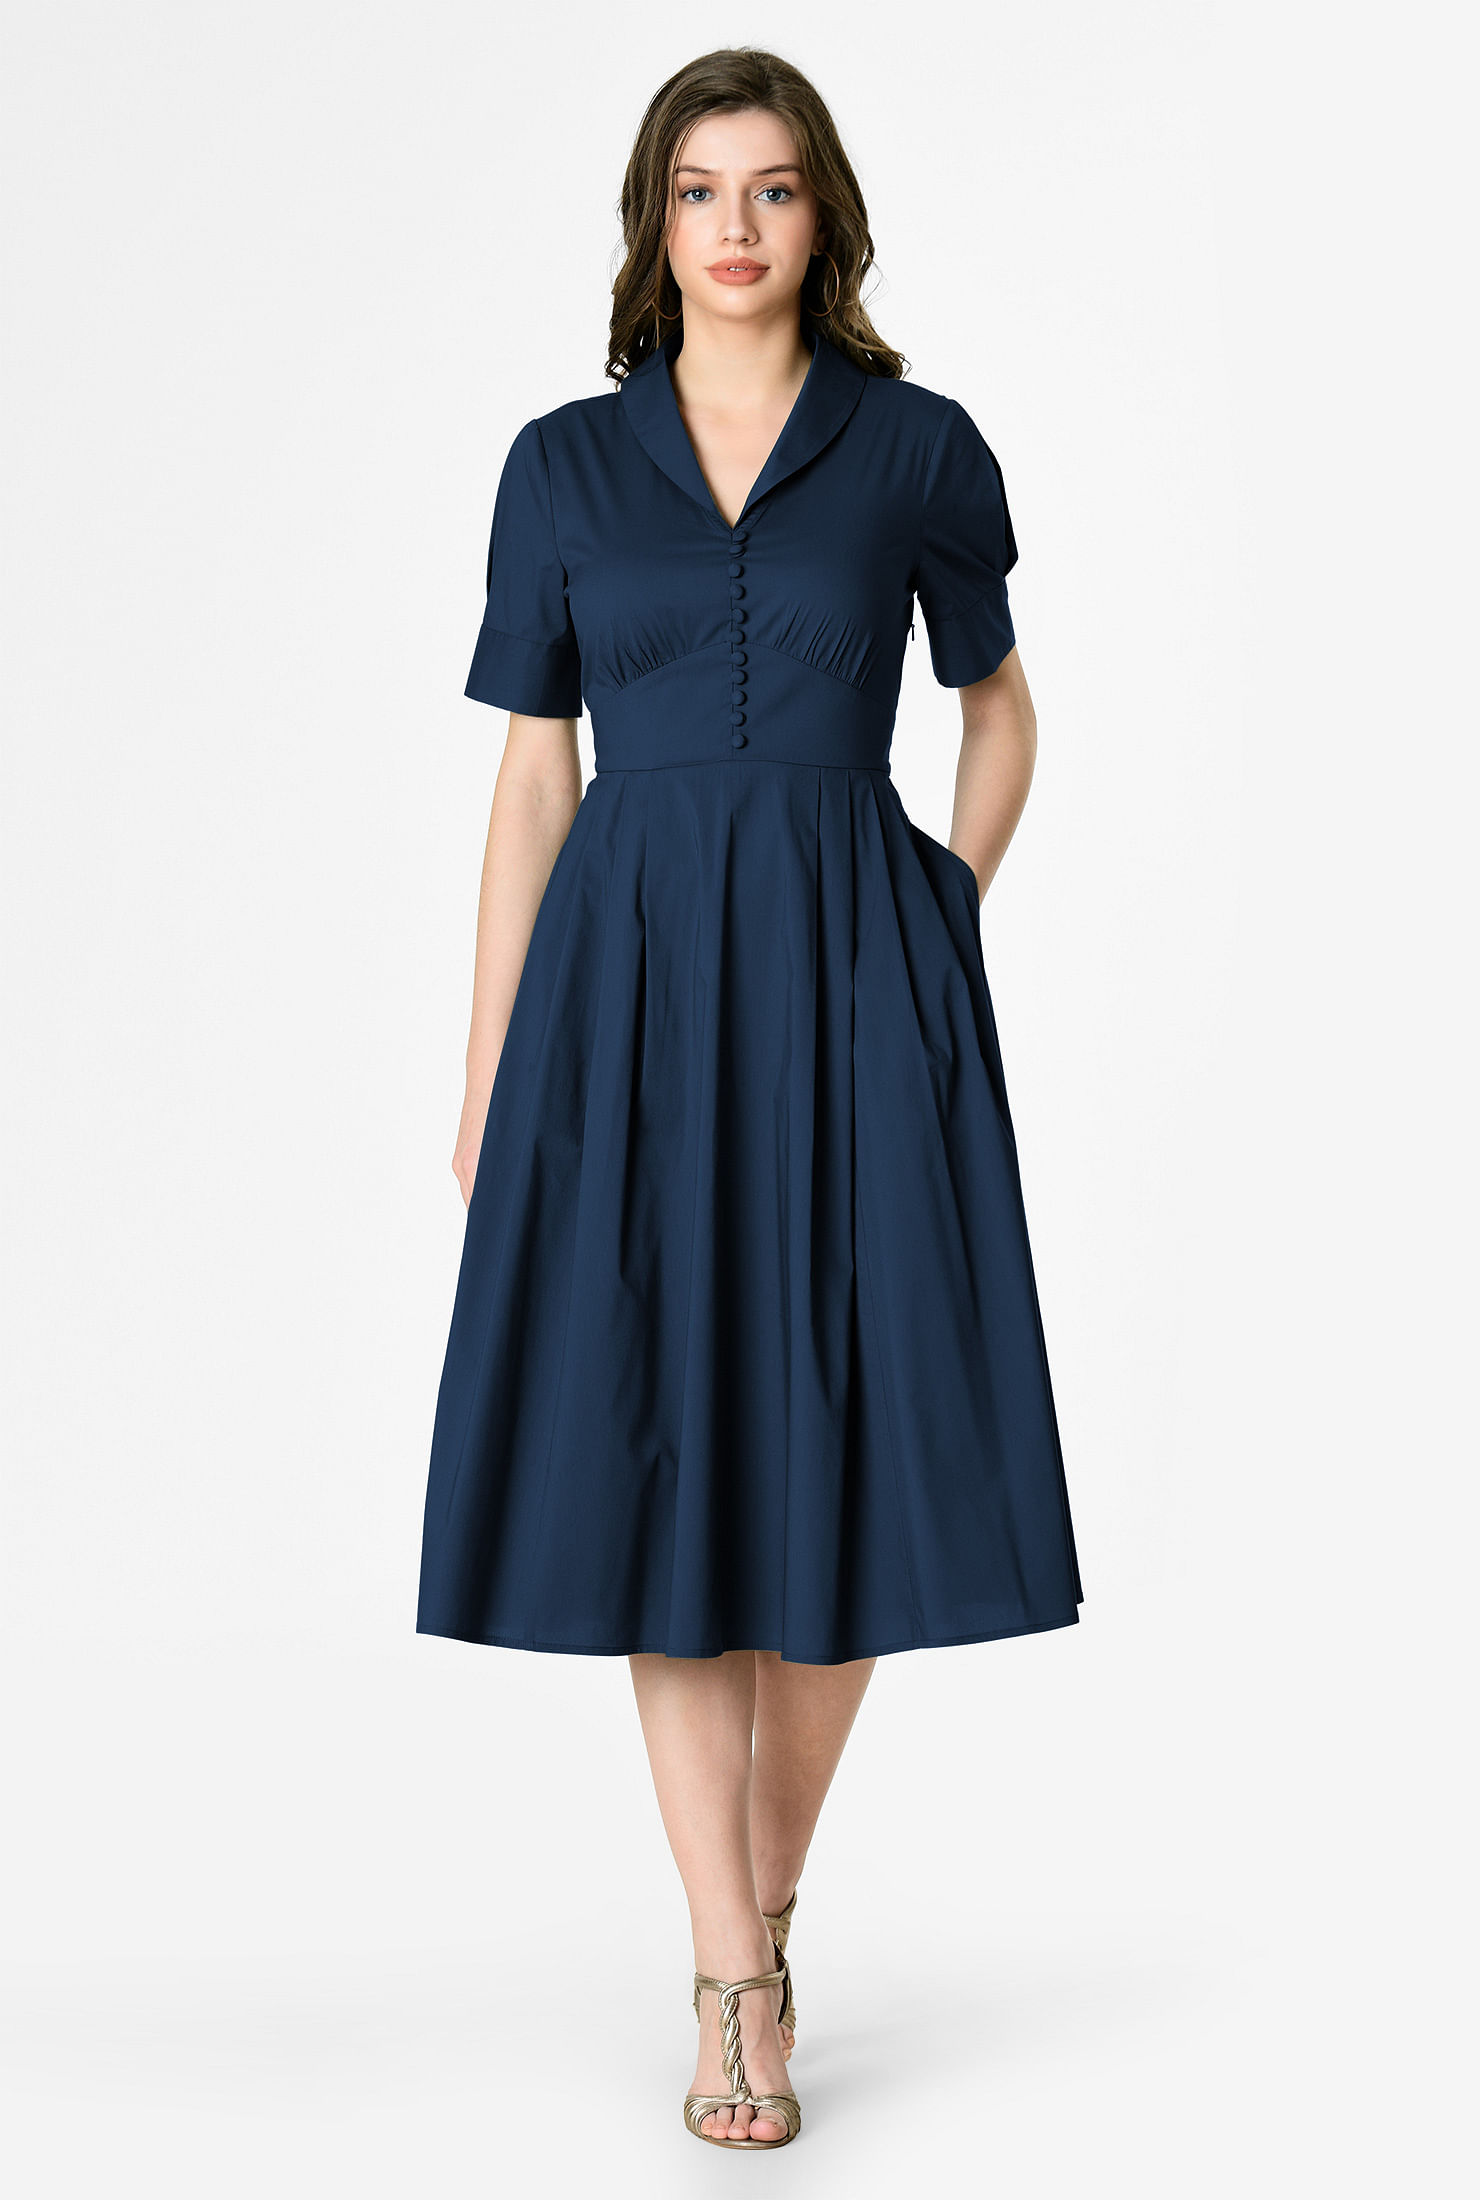 1940s Dresses | 40s Dress, Swing Dress Shawl collar cotton poplin banded empire dress $59.95 AT vintagedancer.com